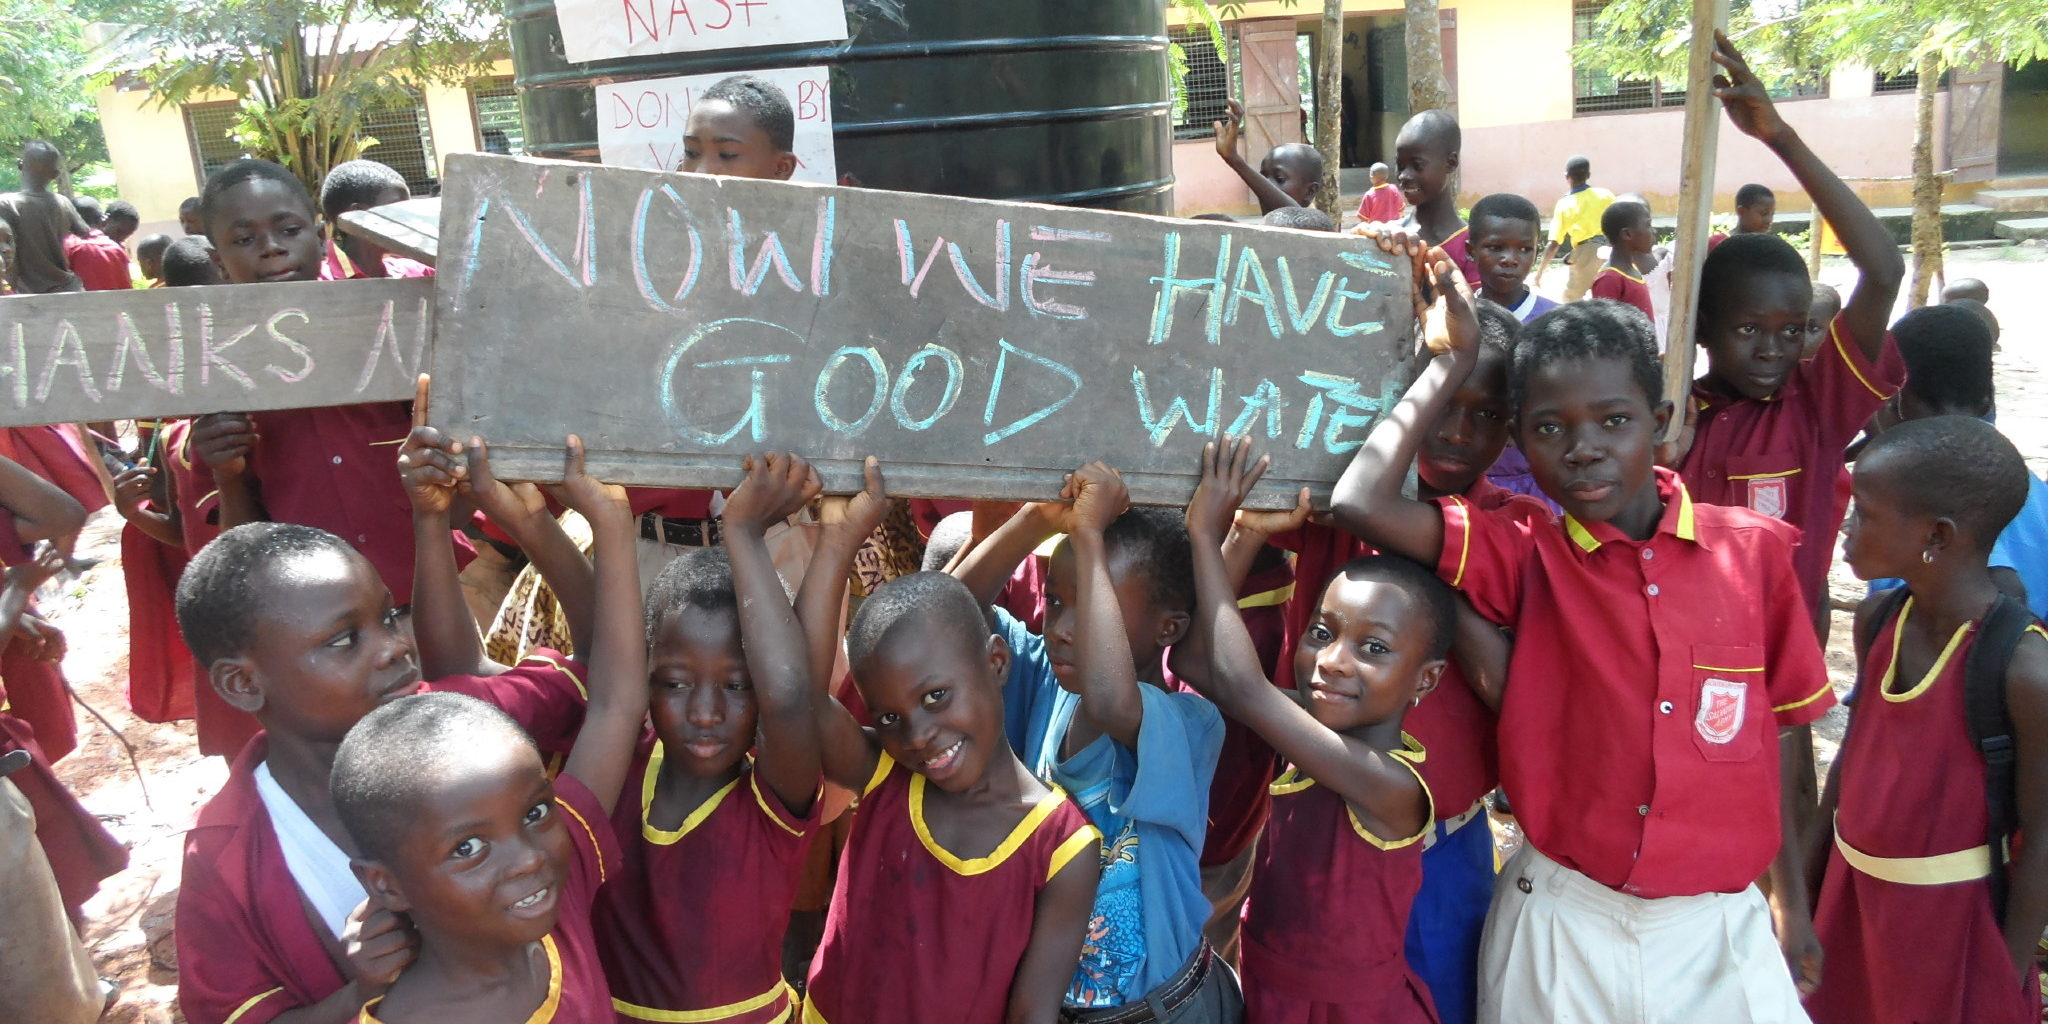 now-we-have-goodwater